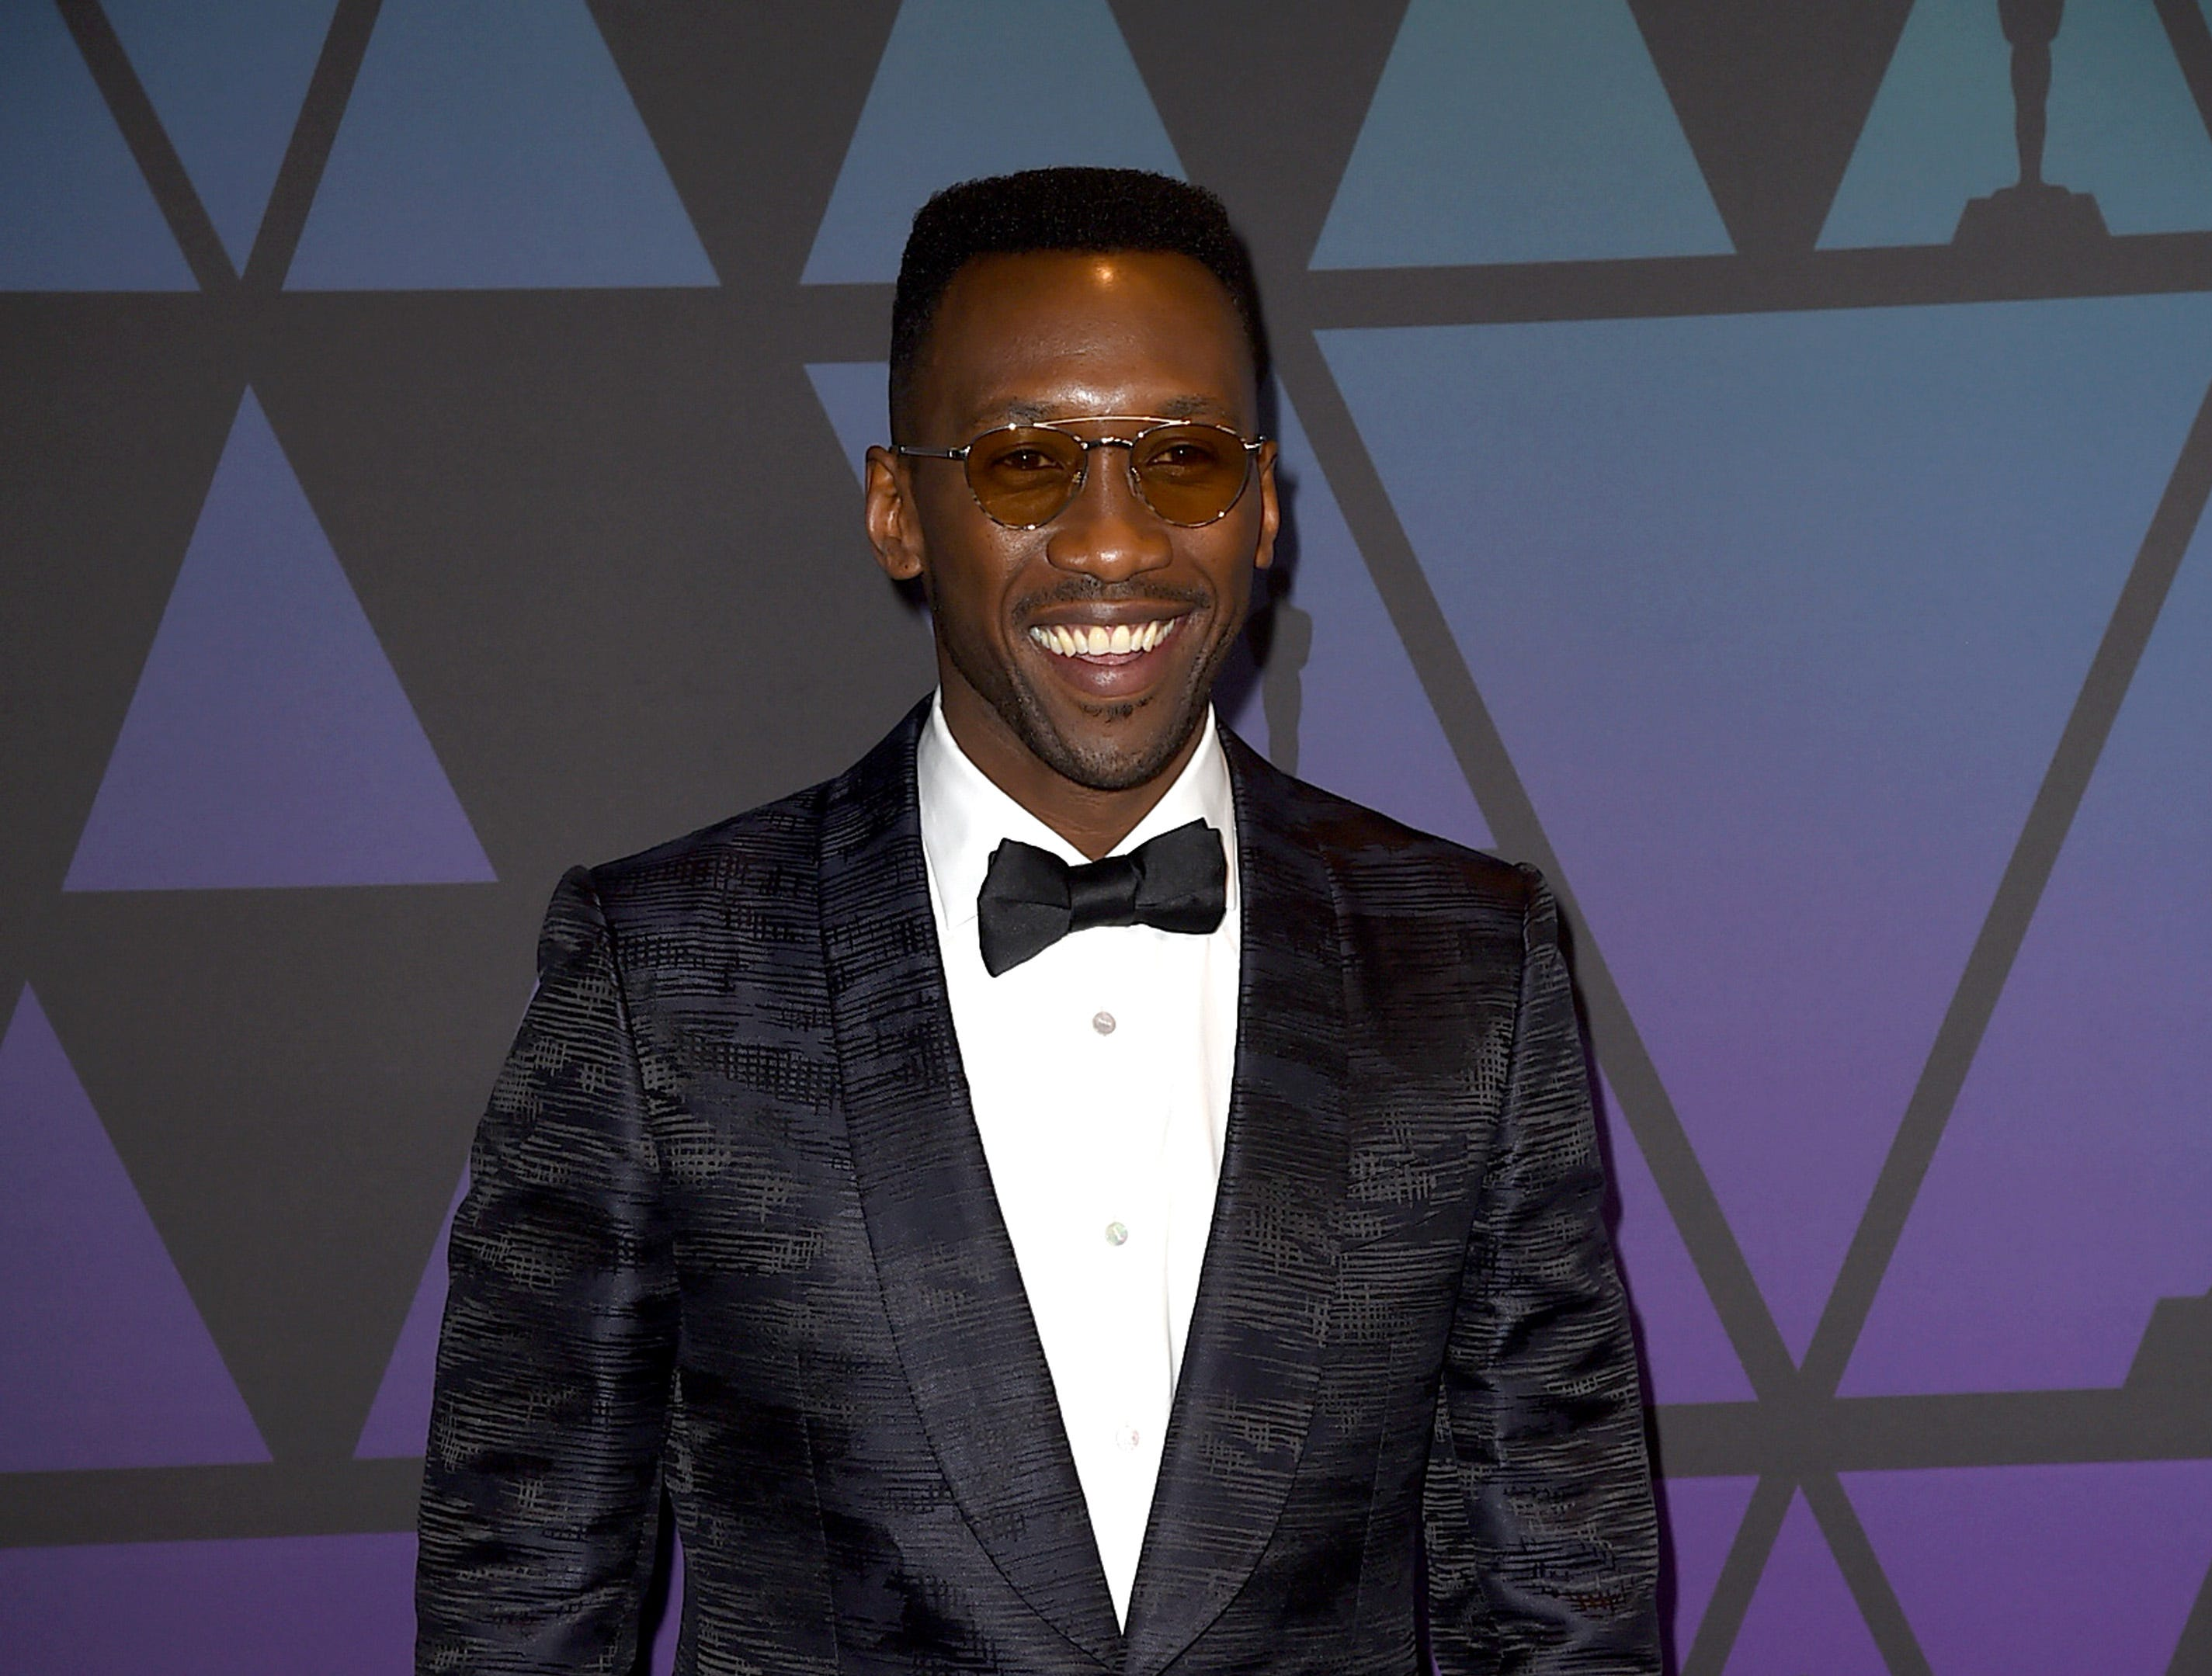 HOLLYWOOD, CA - NOVEMBER 18:  Mahershala Ali attends the Academy of Motion Picture Arts and Sciences' 10th annual Governors Awards at The Ray Dolby Ballroom at Hollywood & Highland Center on November 18, 2018 in Hollywood, California.  (Photo by Kevin Winter/Getty Images) ORG XMIT: 775223509 ORIG FILE ID: 1063405234